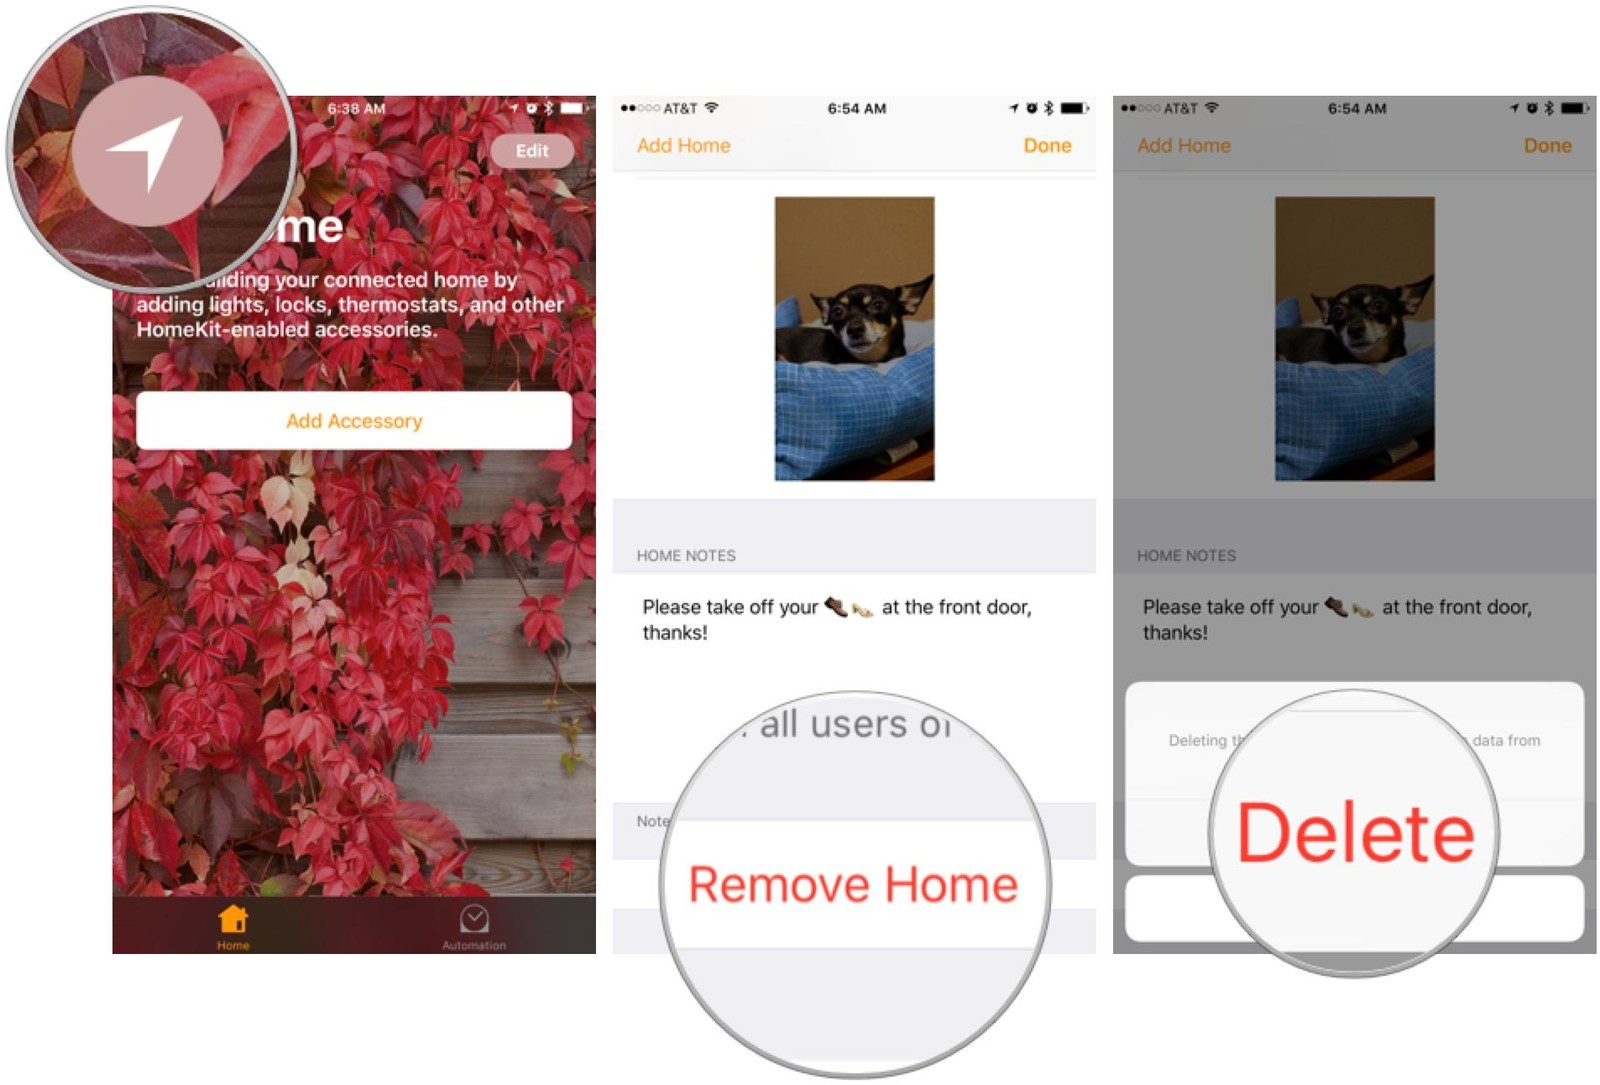 How to remove a home in iOS 10 Home.